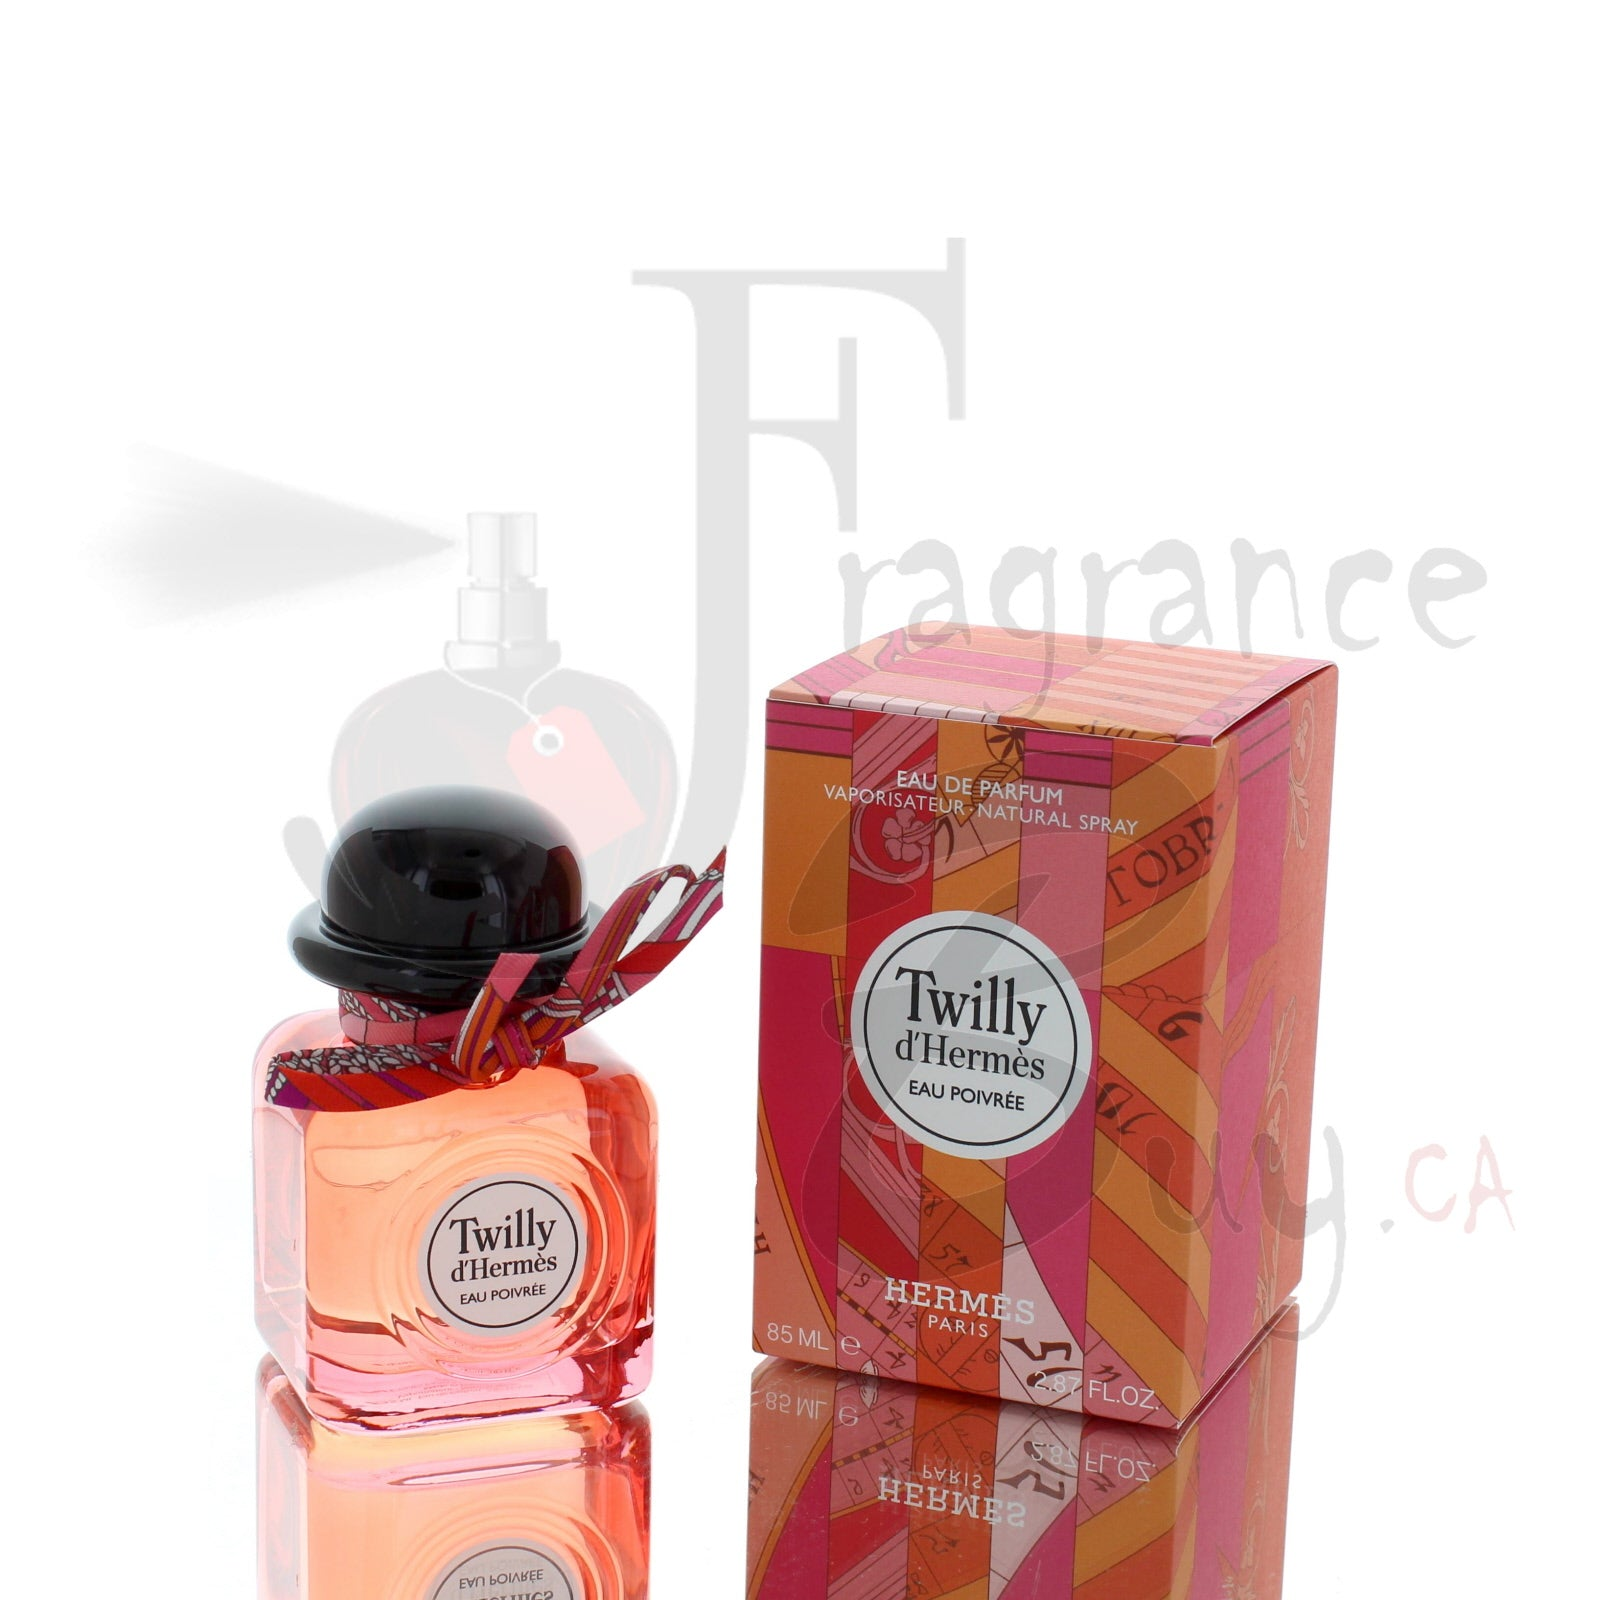 Twilly d'Hermes Eau Poivree For Woman